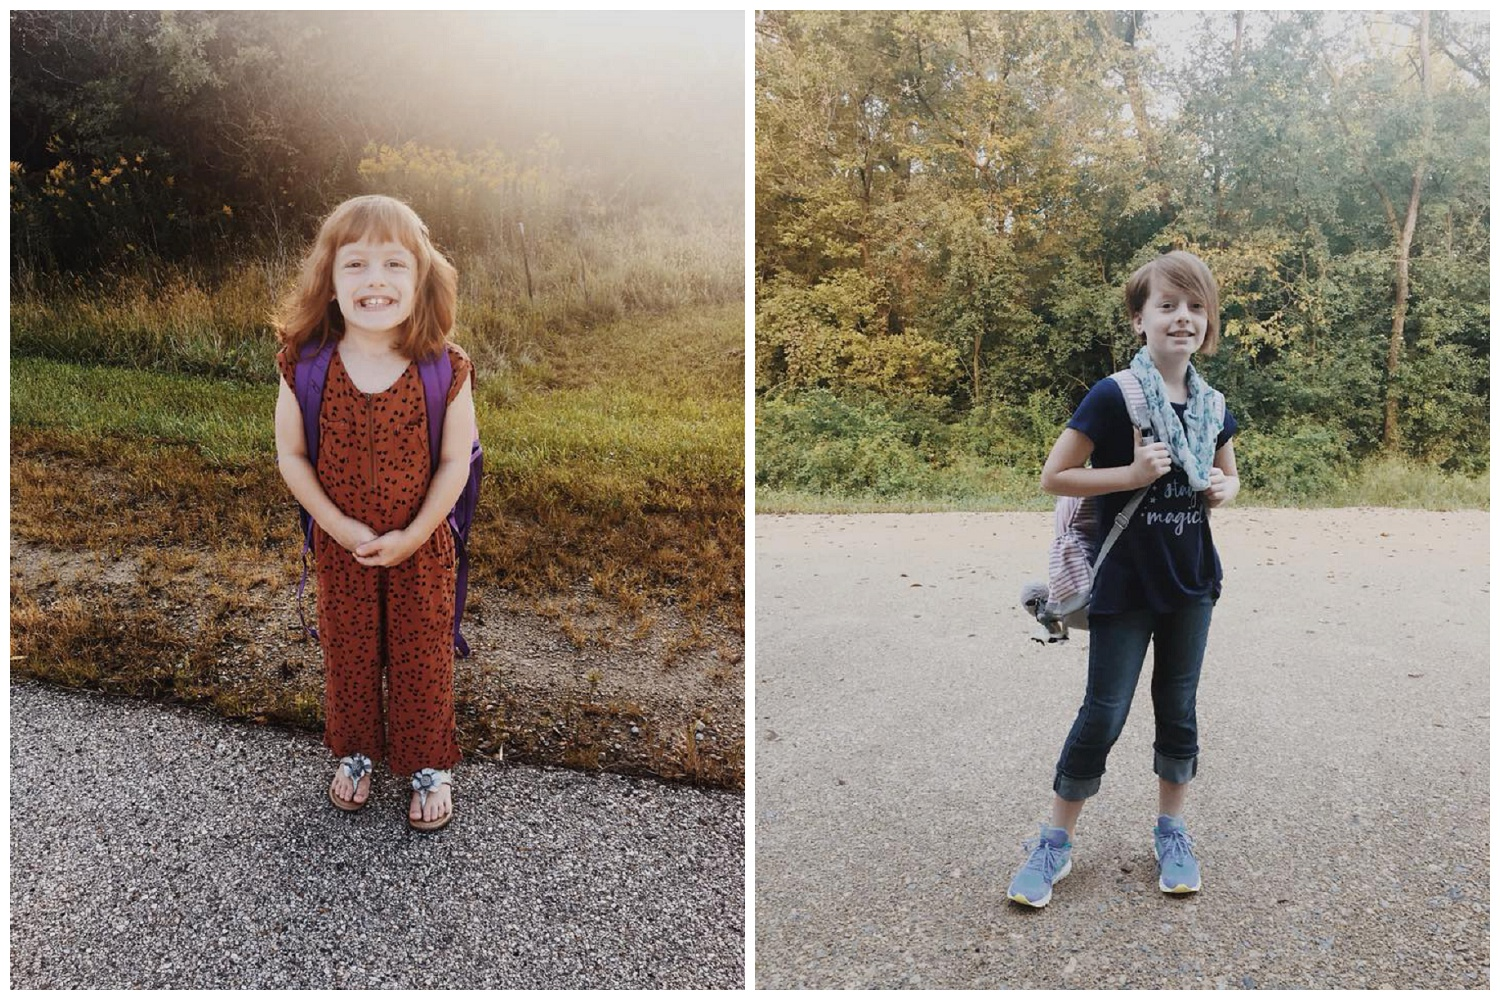 FIRST DAY BACK ( AND FIRST DAY AT THE BRAND NEW SCHOOLS!)  MOLLY IS IN 2ND GRADE AND BETTY IS IN 6TH GRADE